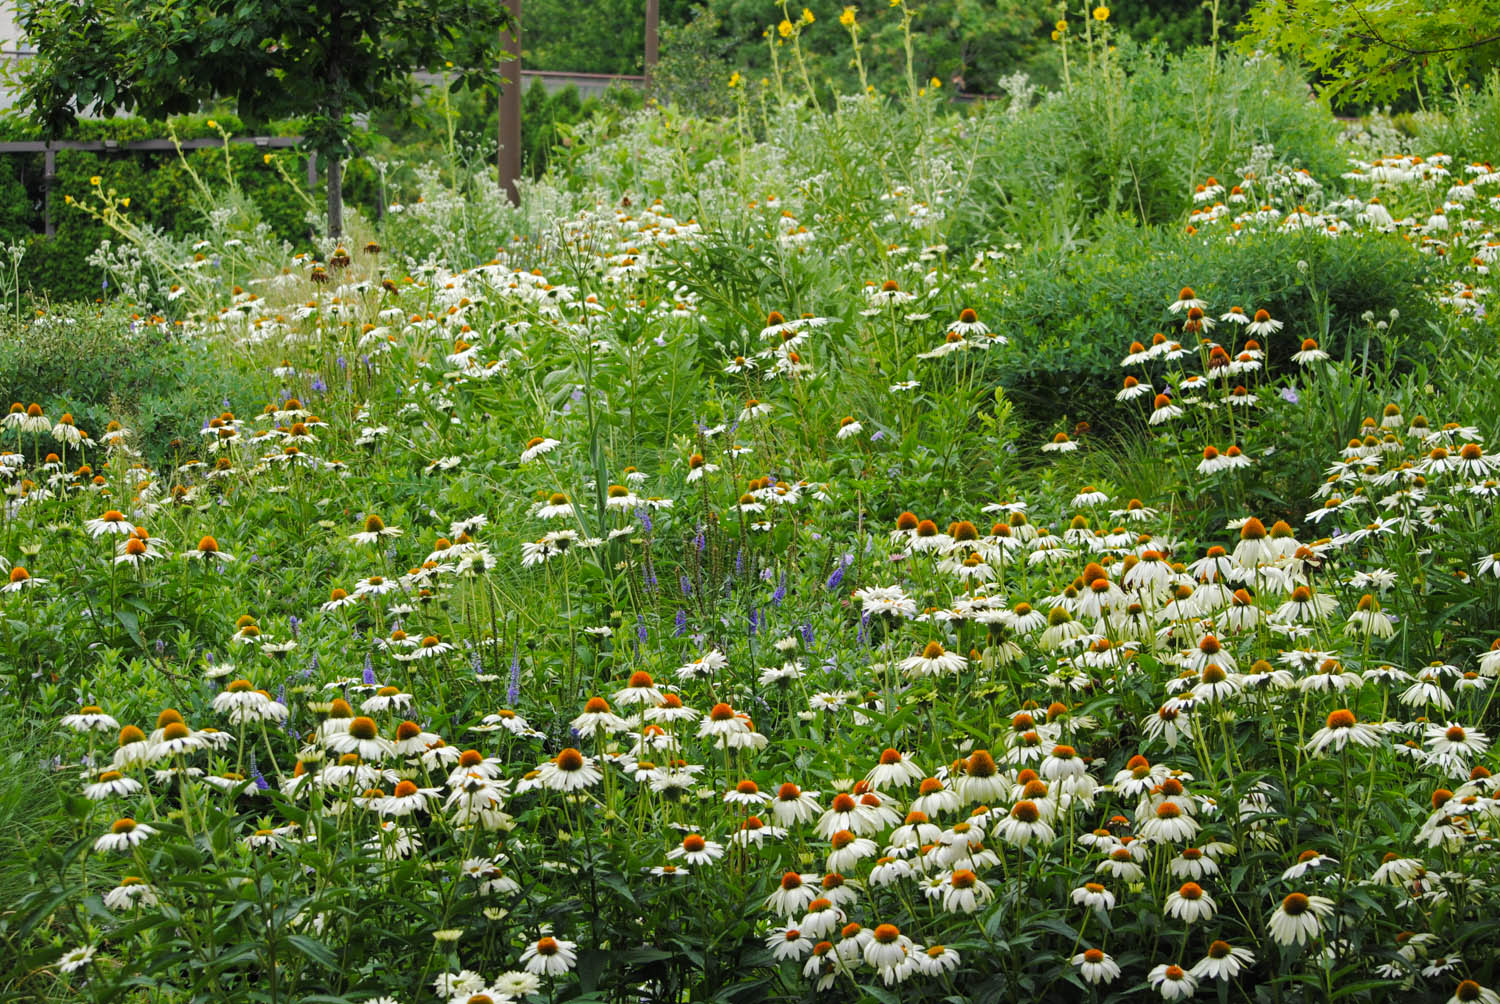 This section was much more intermingled, a matrix of grass into which perennials like  Echinacea  were plugged.